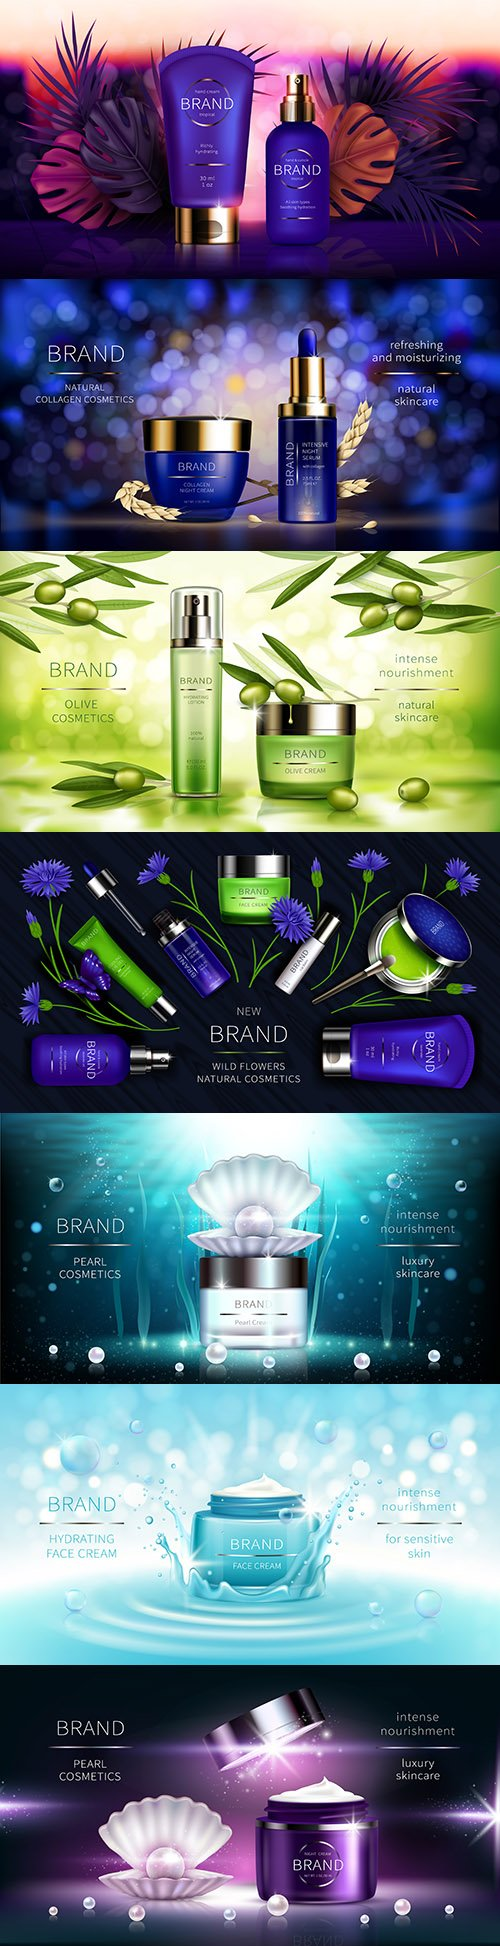 Cosmetics for skin care realistic advertising poster